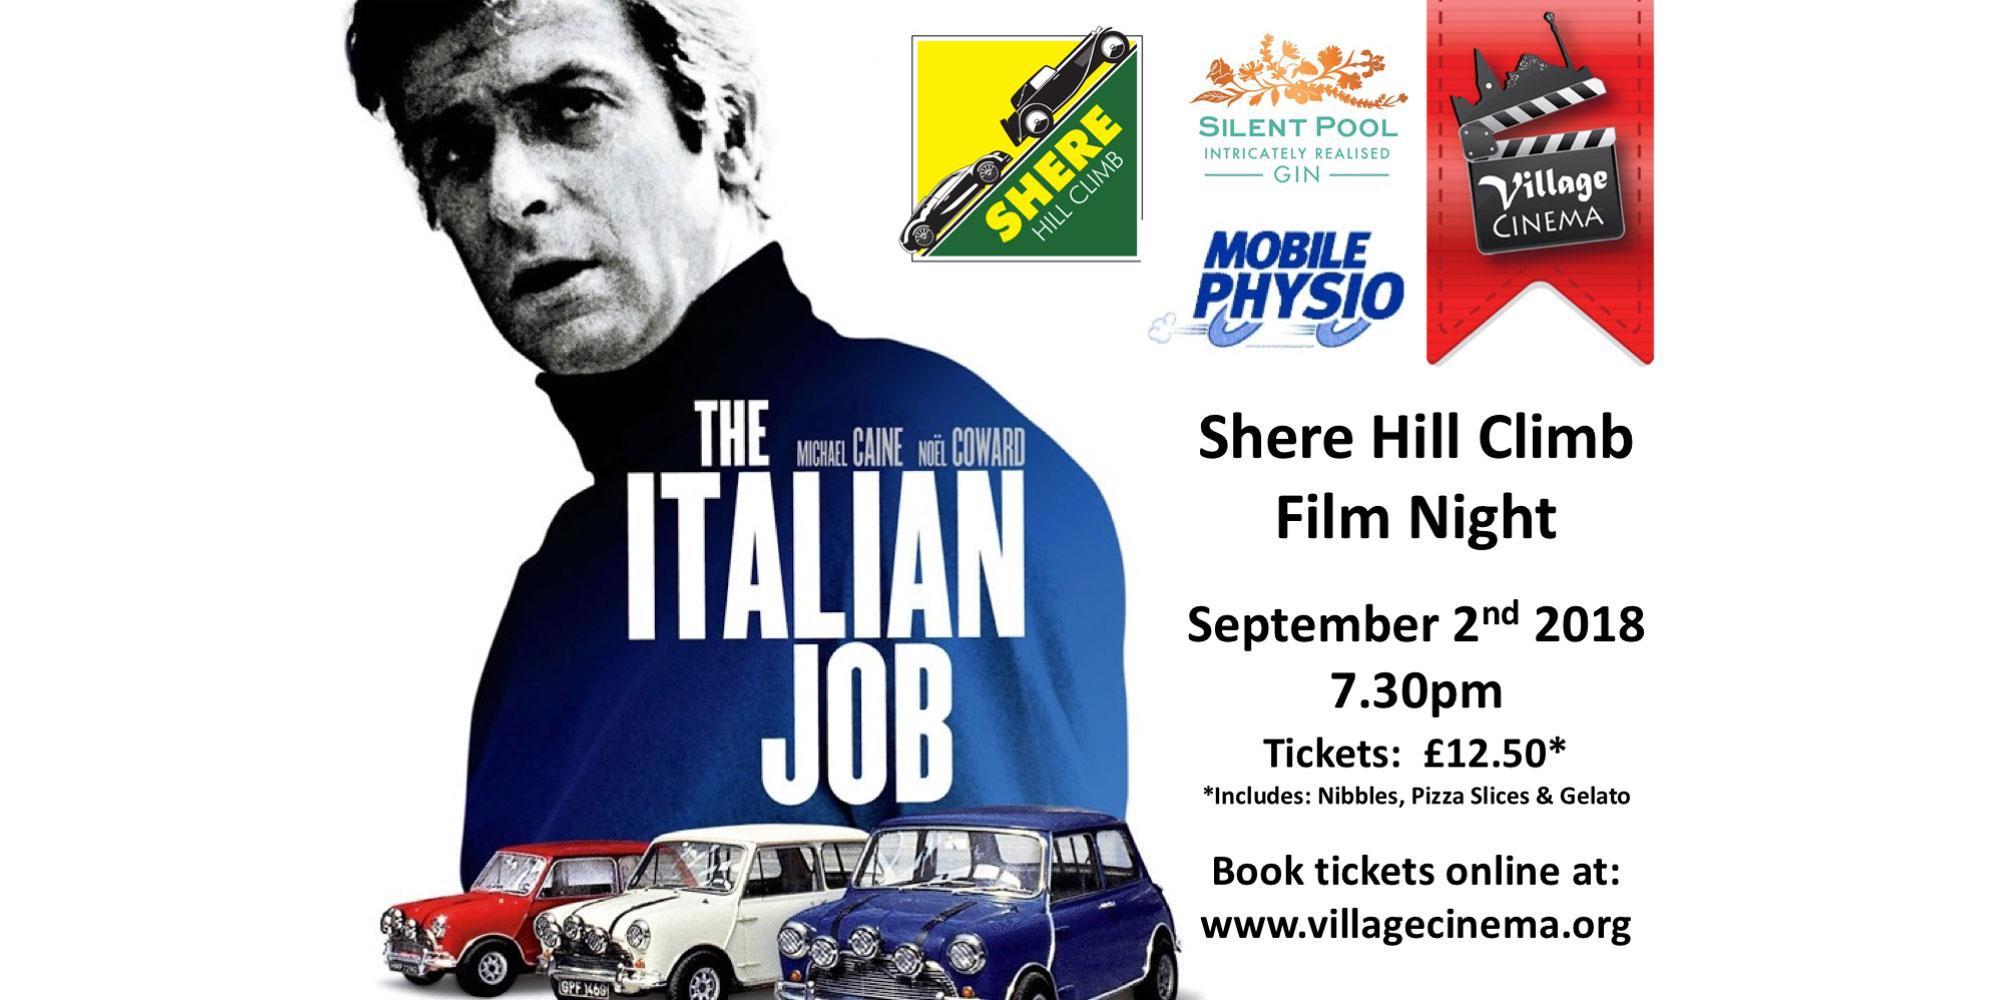 Shere Hill Climb Film Night - The Italian Job